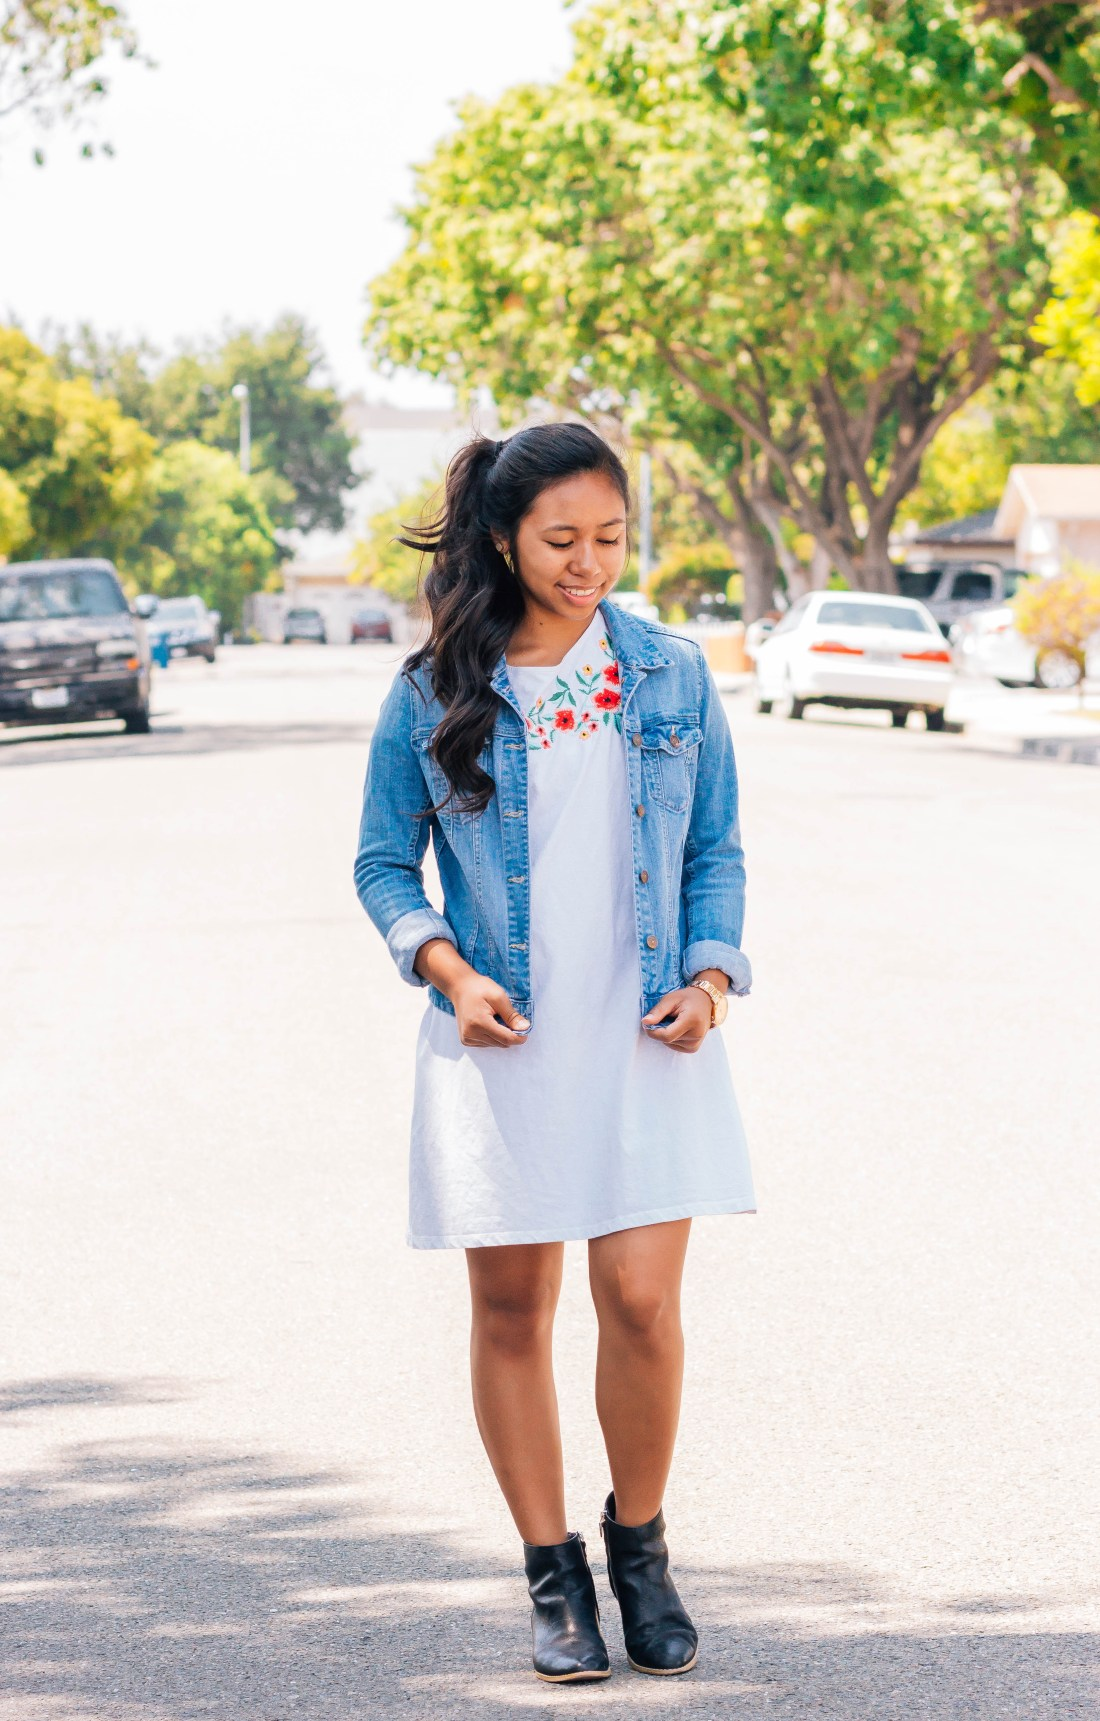 Denim jacket, white dress, and black ankle boots | 7 cute and modest back to school outfits that you can wear | high school and college outfits | P31beauty